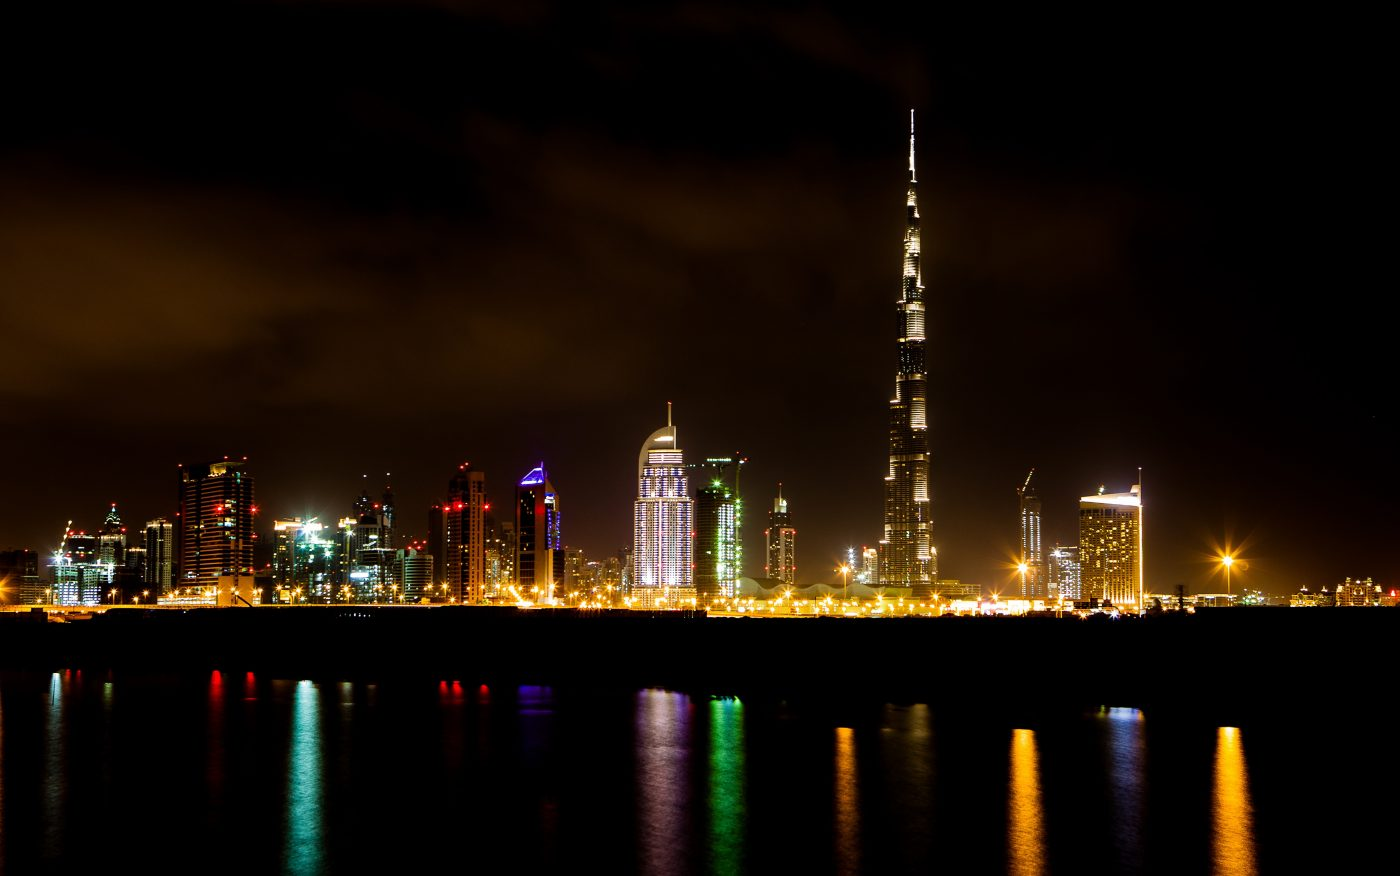 Burj Dubai's Towering March